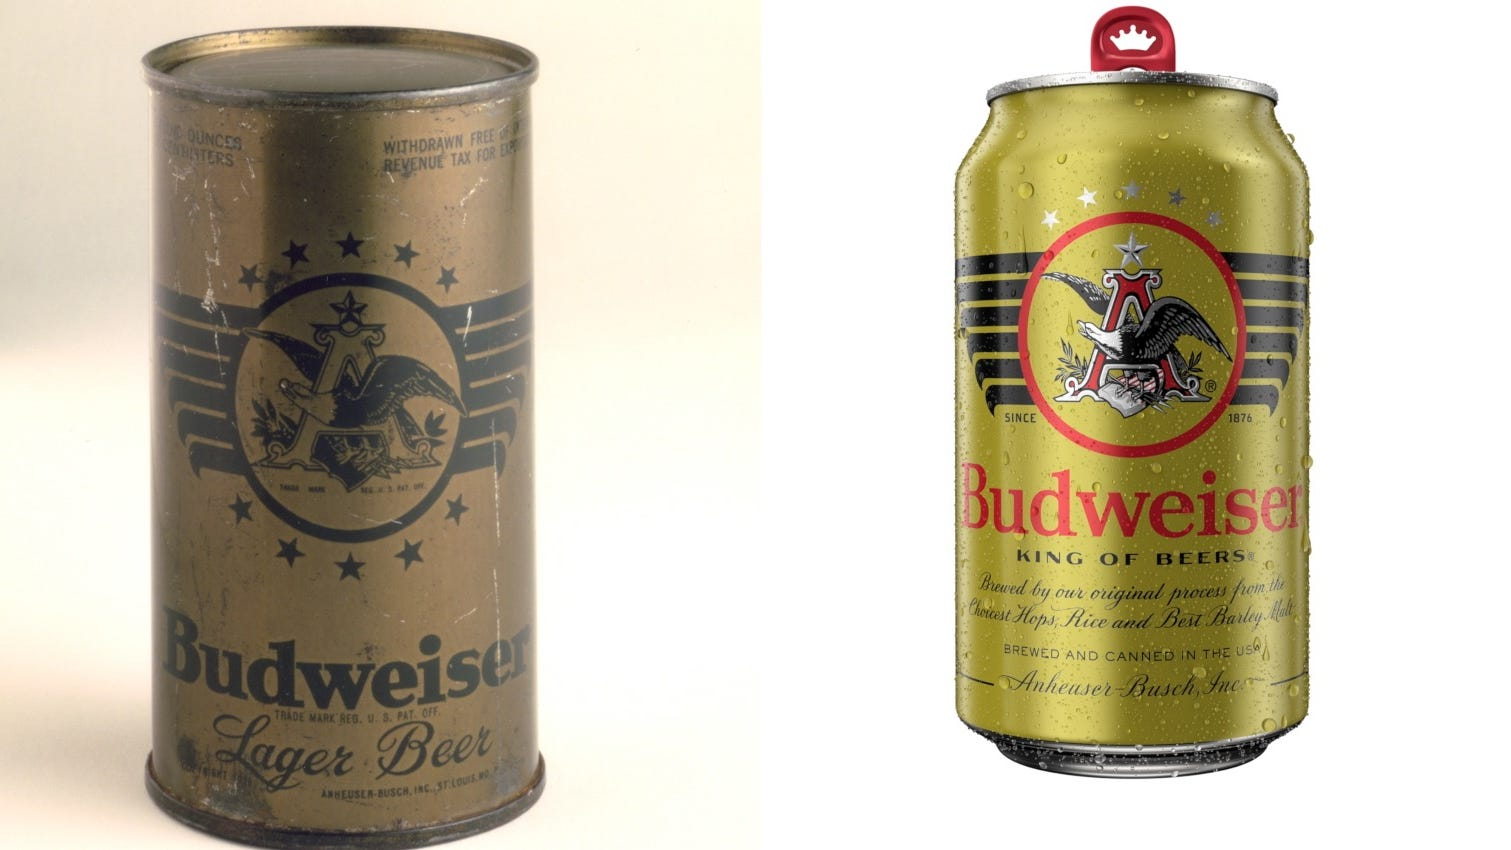 Budwesier launches new 'military heritage' cans based on vintage WWII design